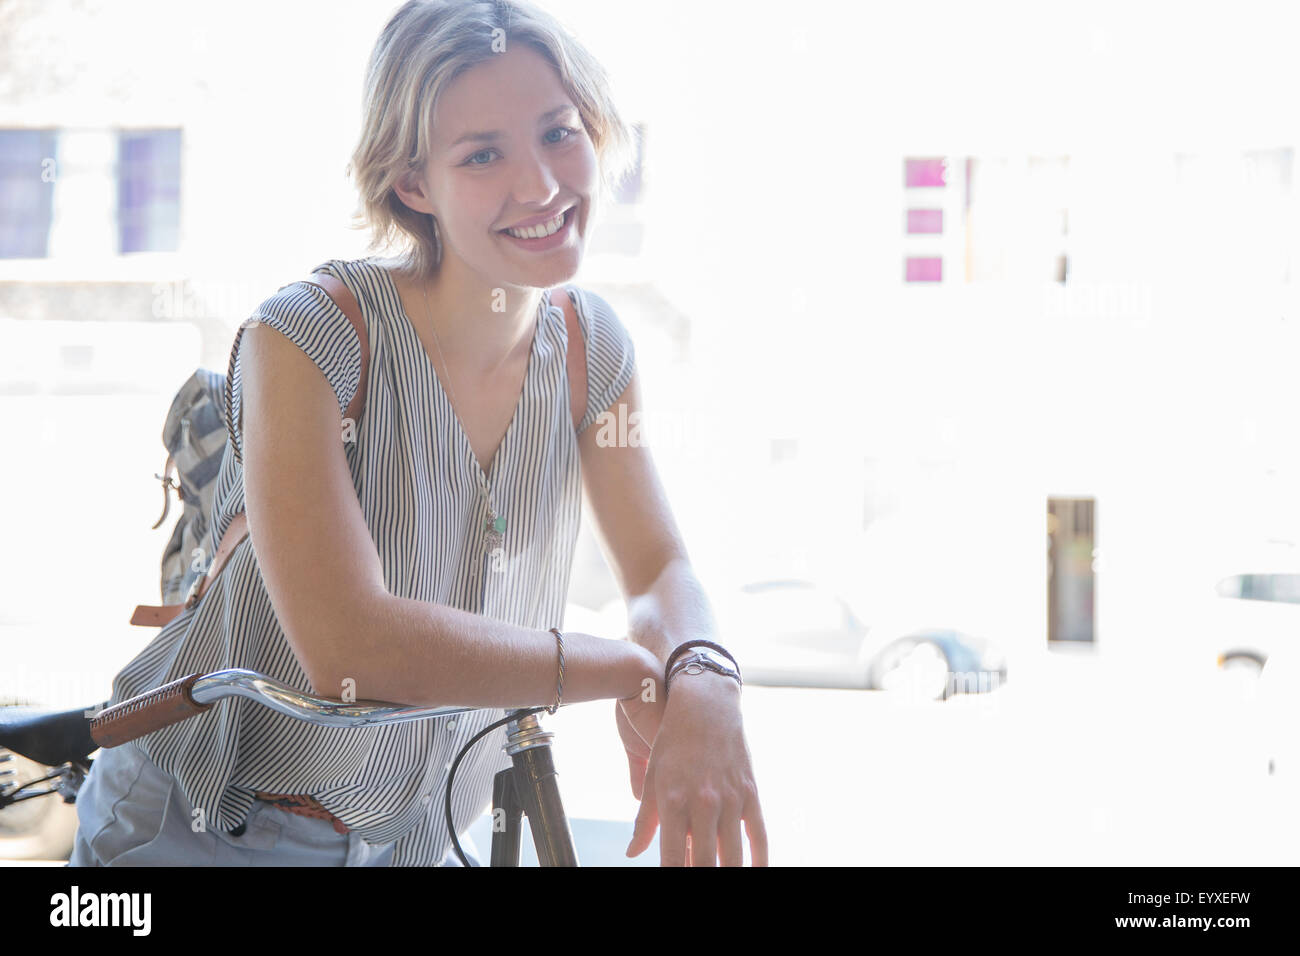 Portrait smiling woman on bicycle - Stock Image